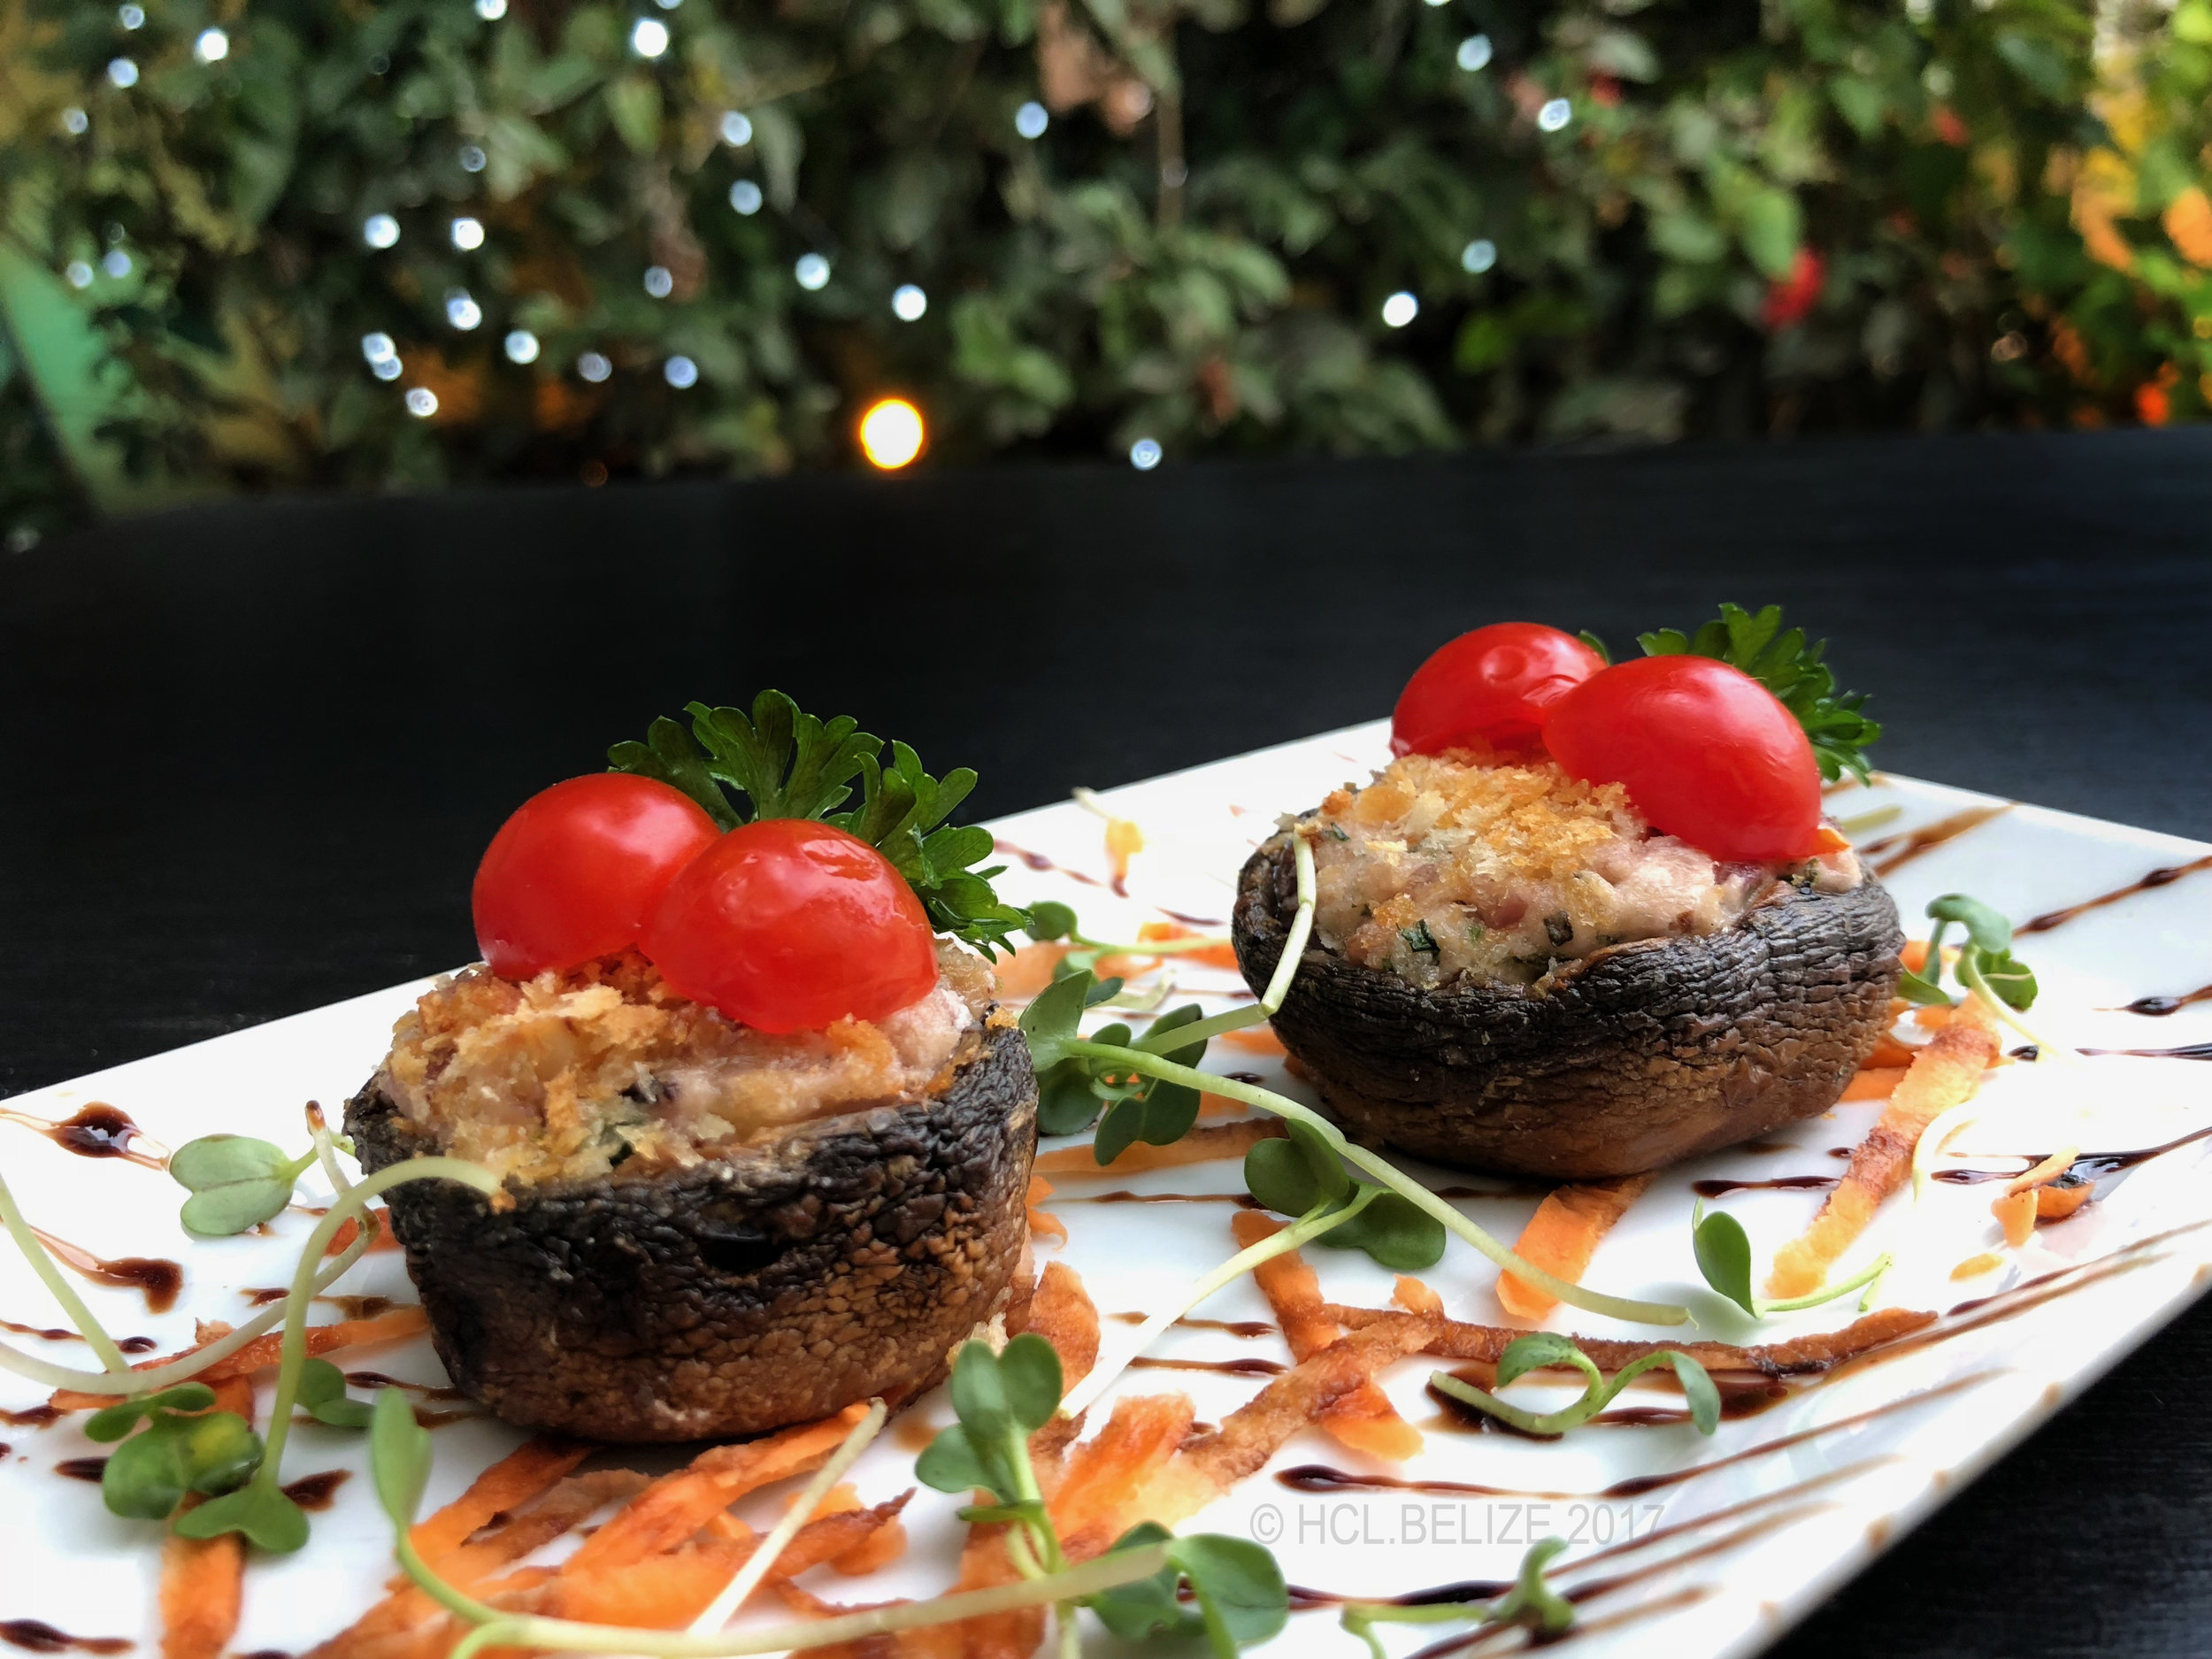 1st Course - Stuffed Mushrooms - Oven roasted bacon stuffed button mushrooms with shallots, walnuts, rosemary, and parsley